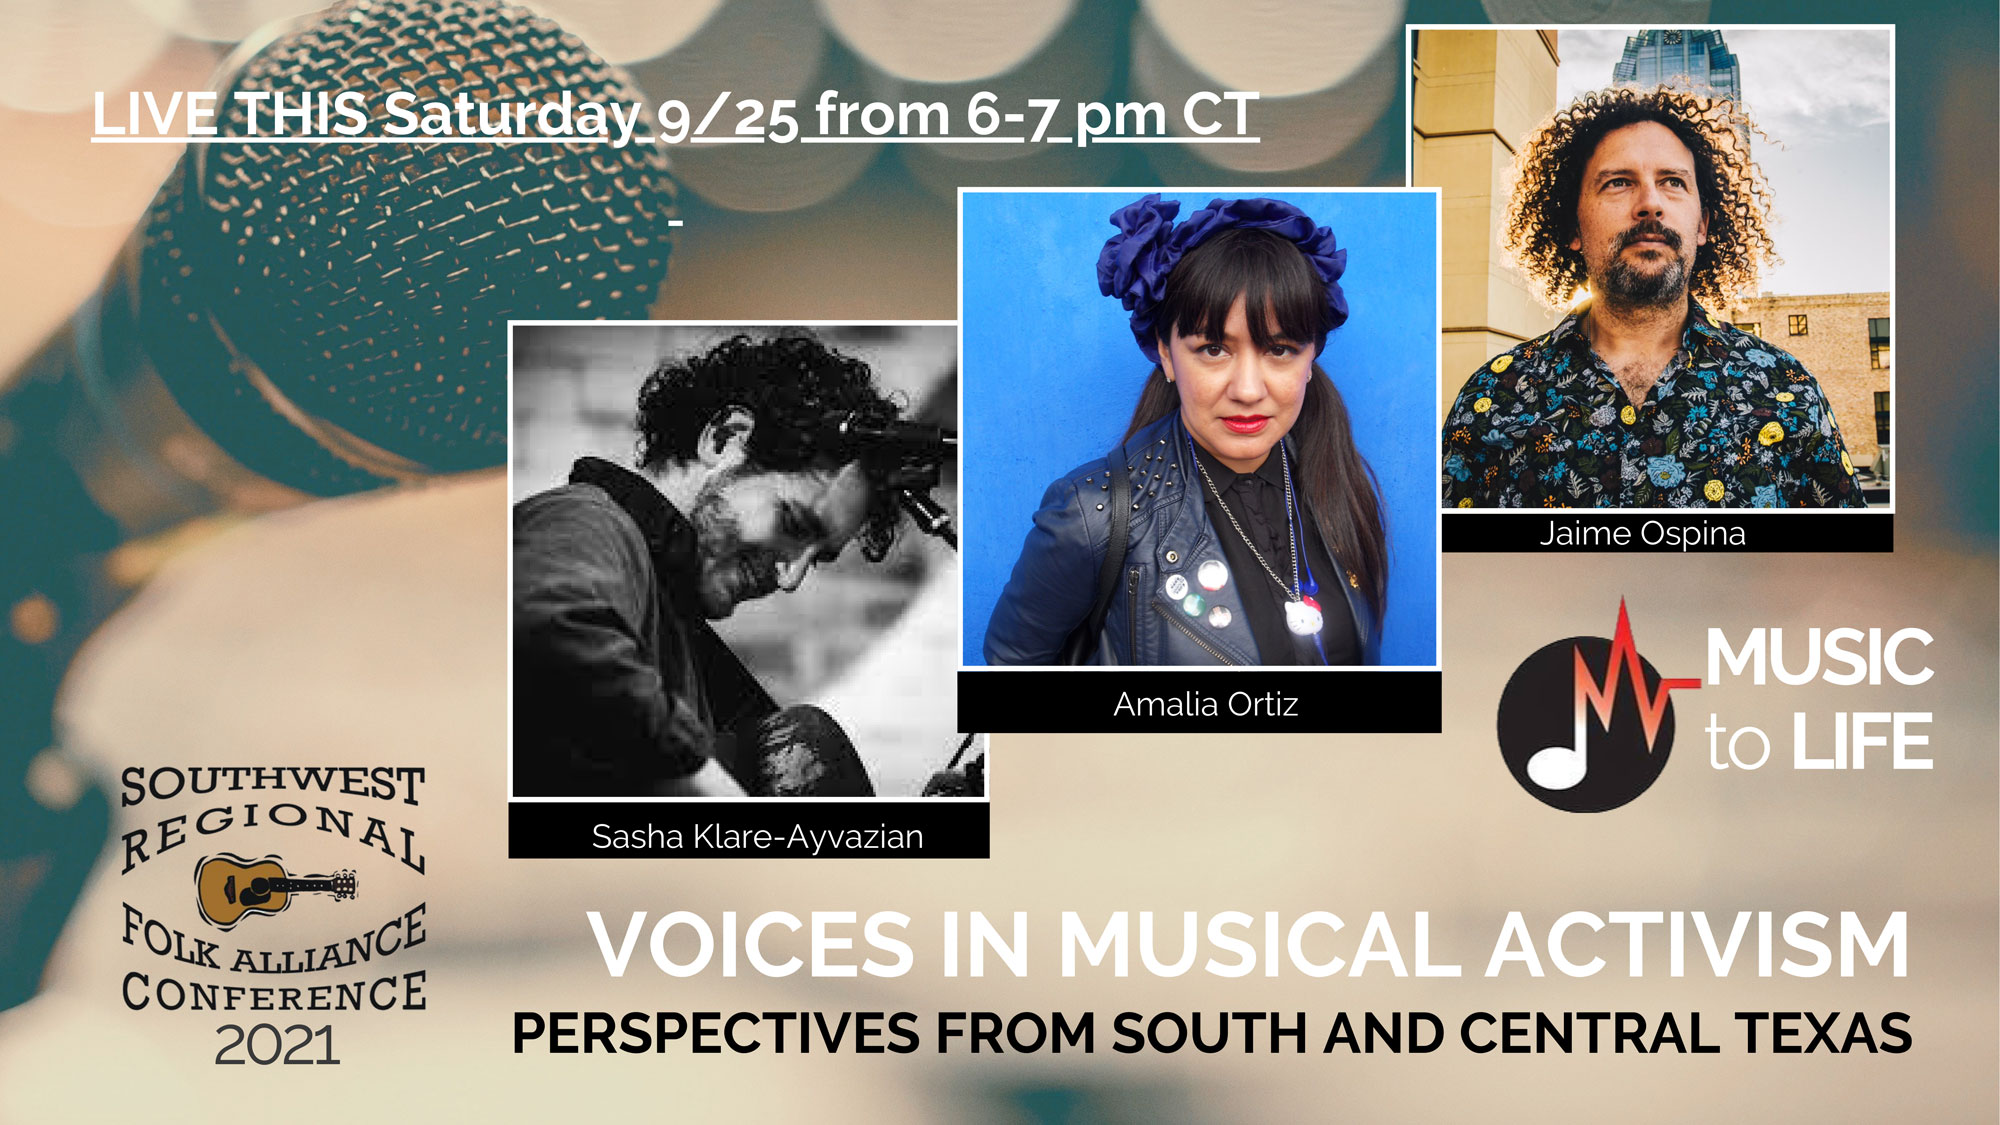 Voices in Musical Activism